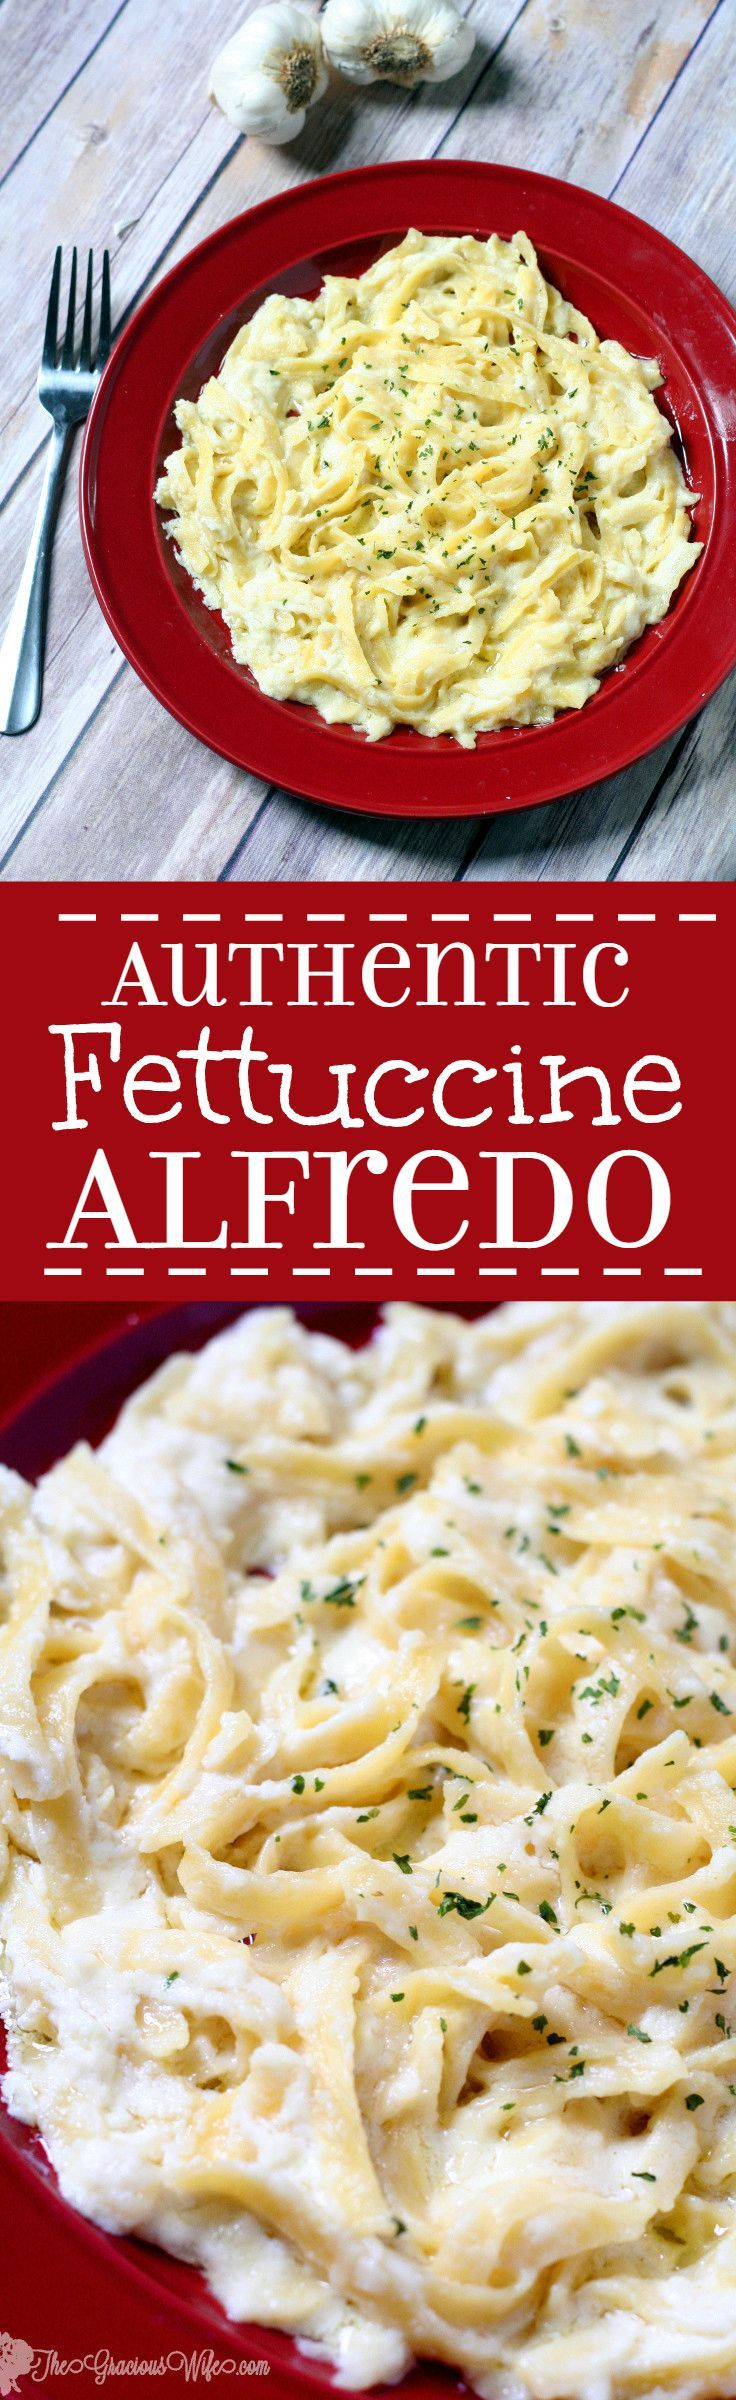 Authentic Fettuccine Alfredo Recipe is a heavenly, easy and quick pasta dinner idea combination of butter, cream, and Parmesan to make a smooth creamy REAL Alfredo sauce recipe. That's it! Super quick and easy dinner! Also great with added garlic and chicken!  One of my absolute all-time favorites! Sooo delicious!